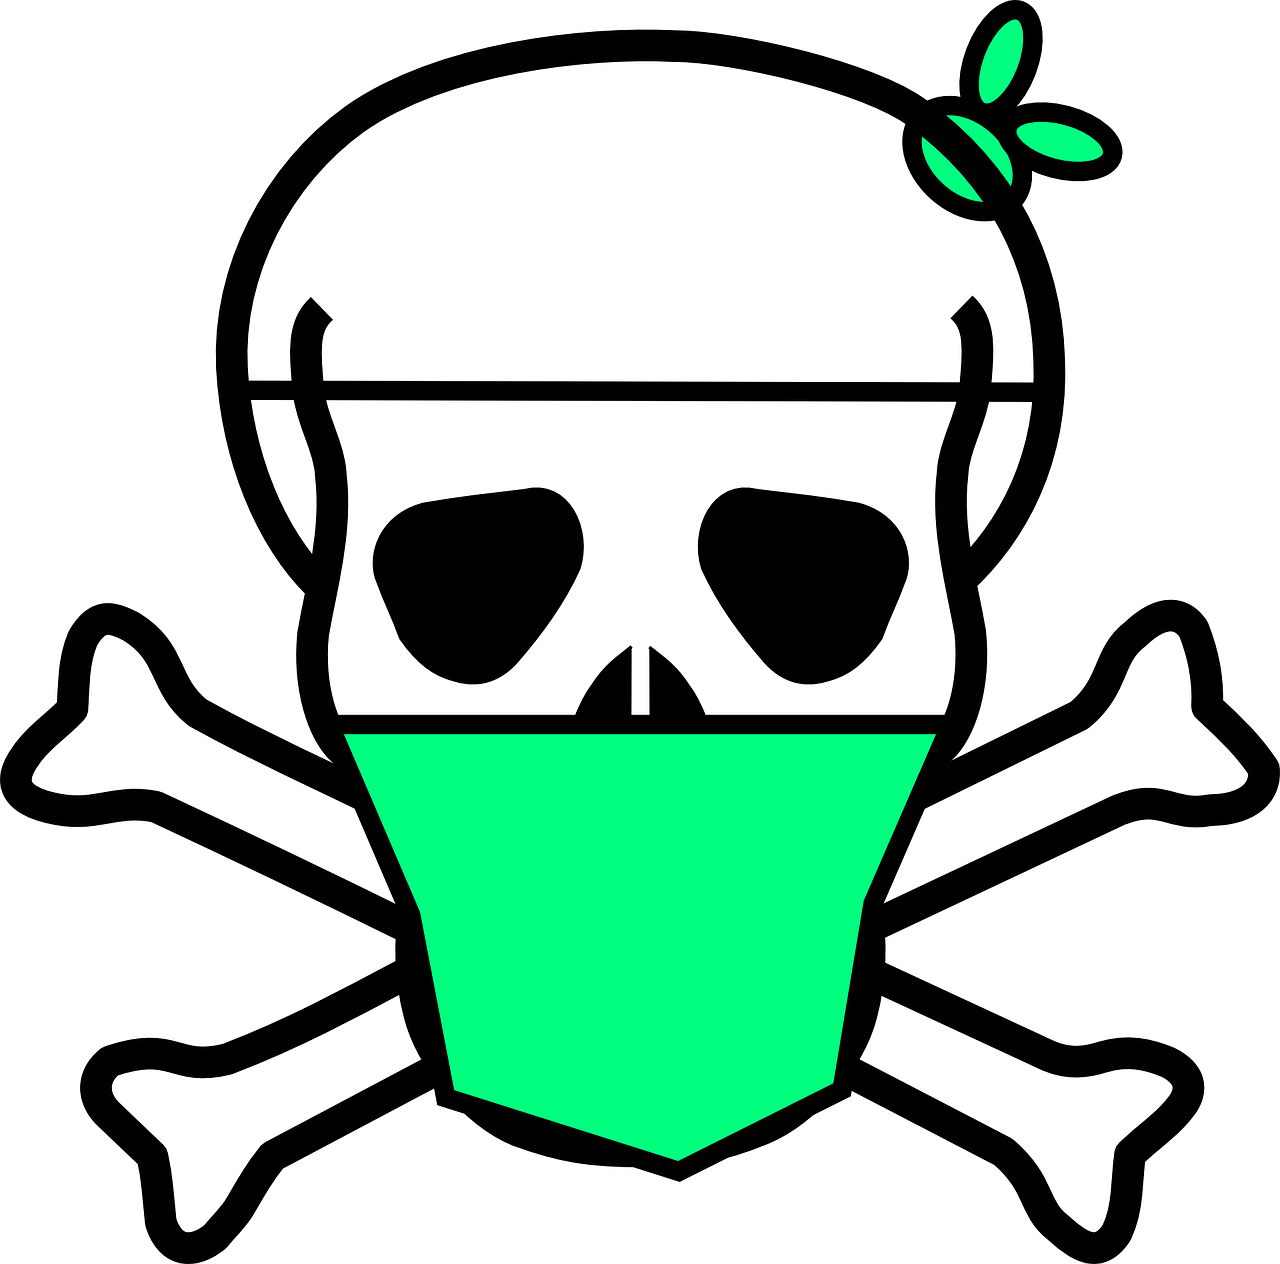 Skull Crossbones Surgical Mask Free Vector Graphic On Pixabay